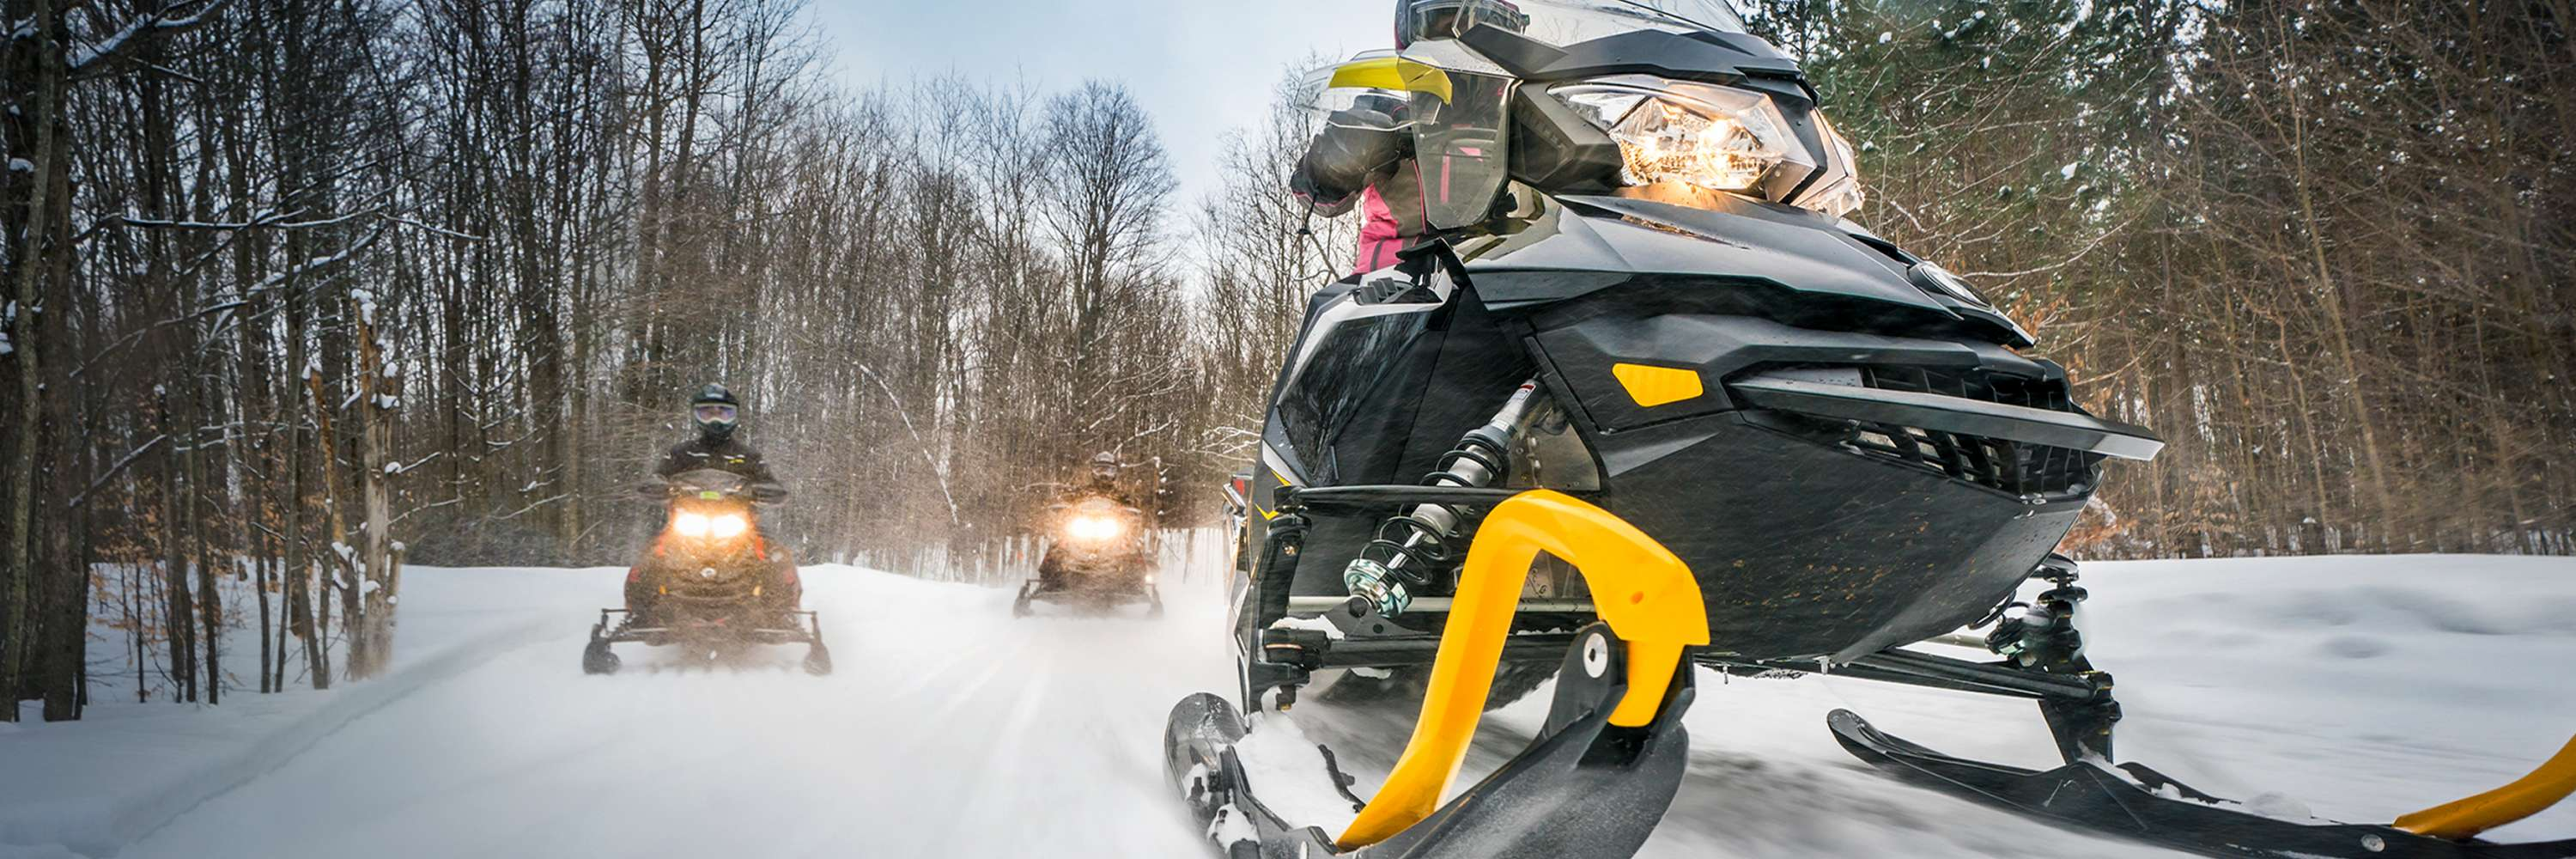 Pure Michigan Snowmobiling